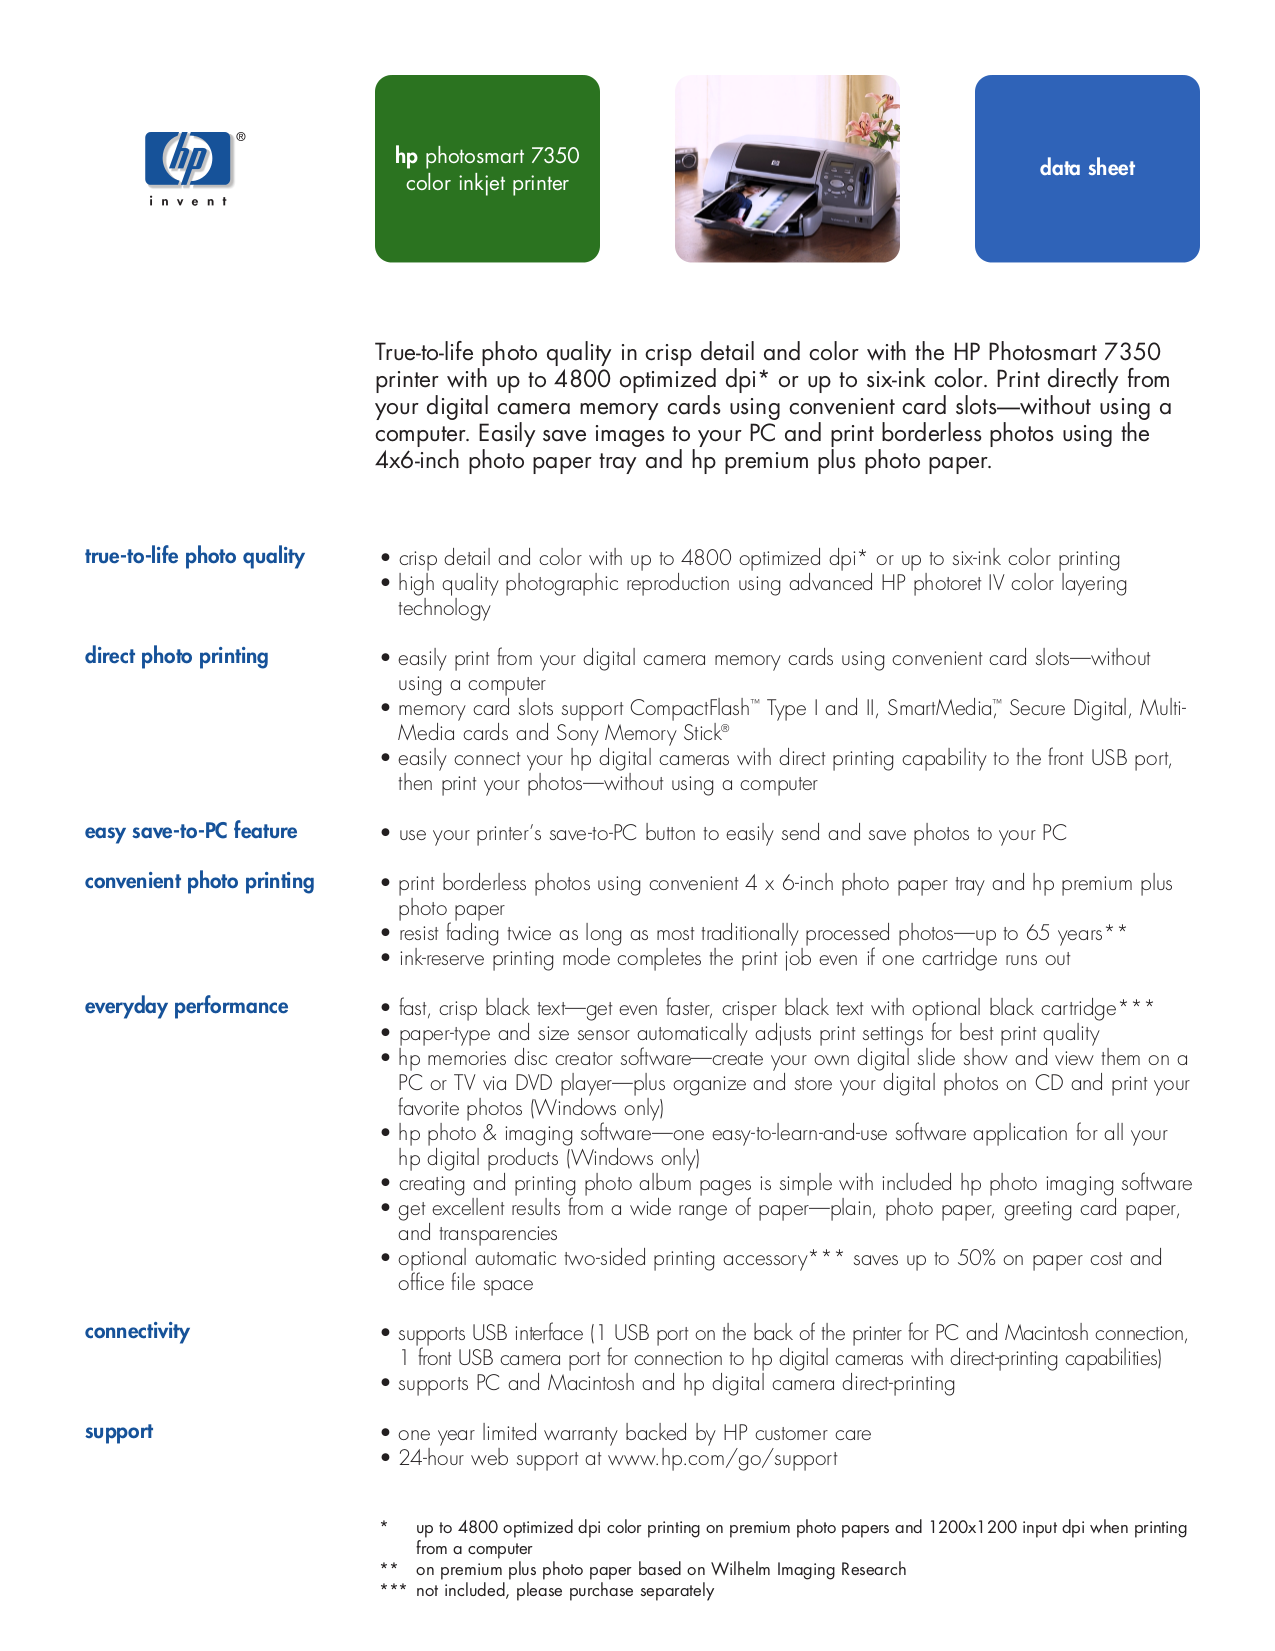 pdf for HP Printer Photosmart 7350 manual